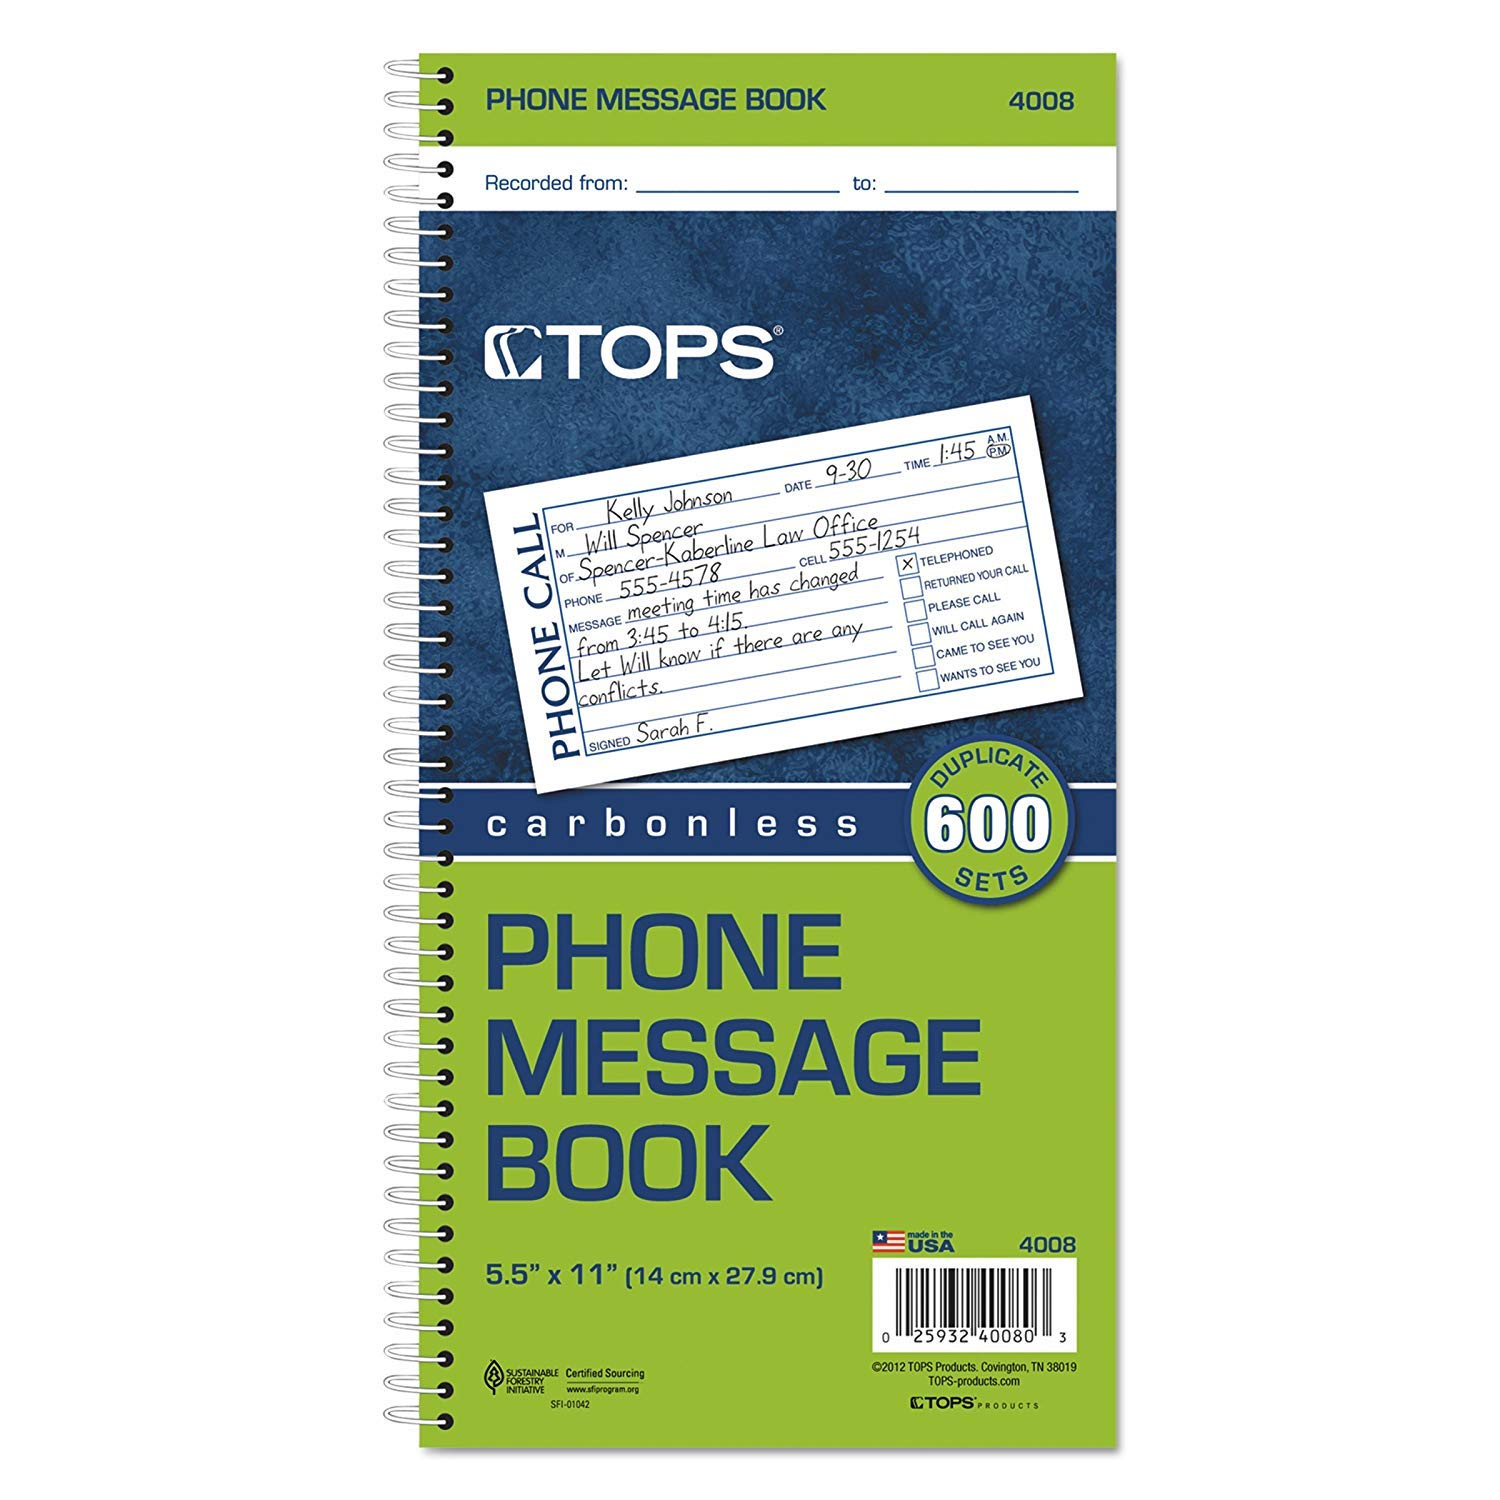 TOPS Message/While You were Out Carbonless Duplicate, 5.5 x 11 Inches, 600-Set Book (4008), Pack of 14